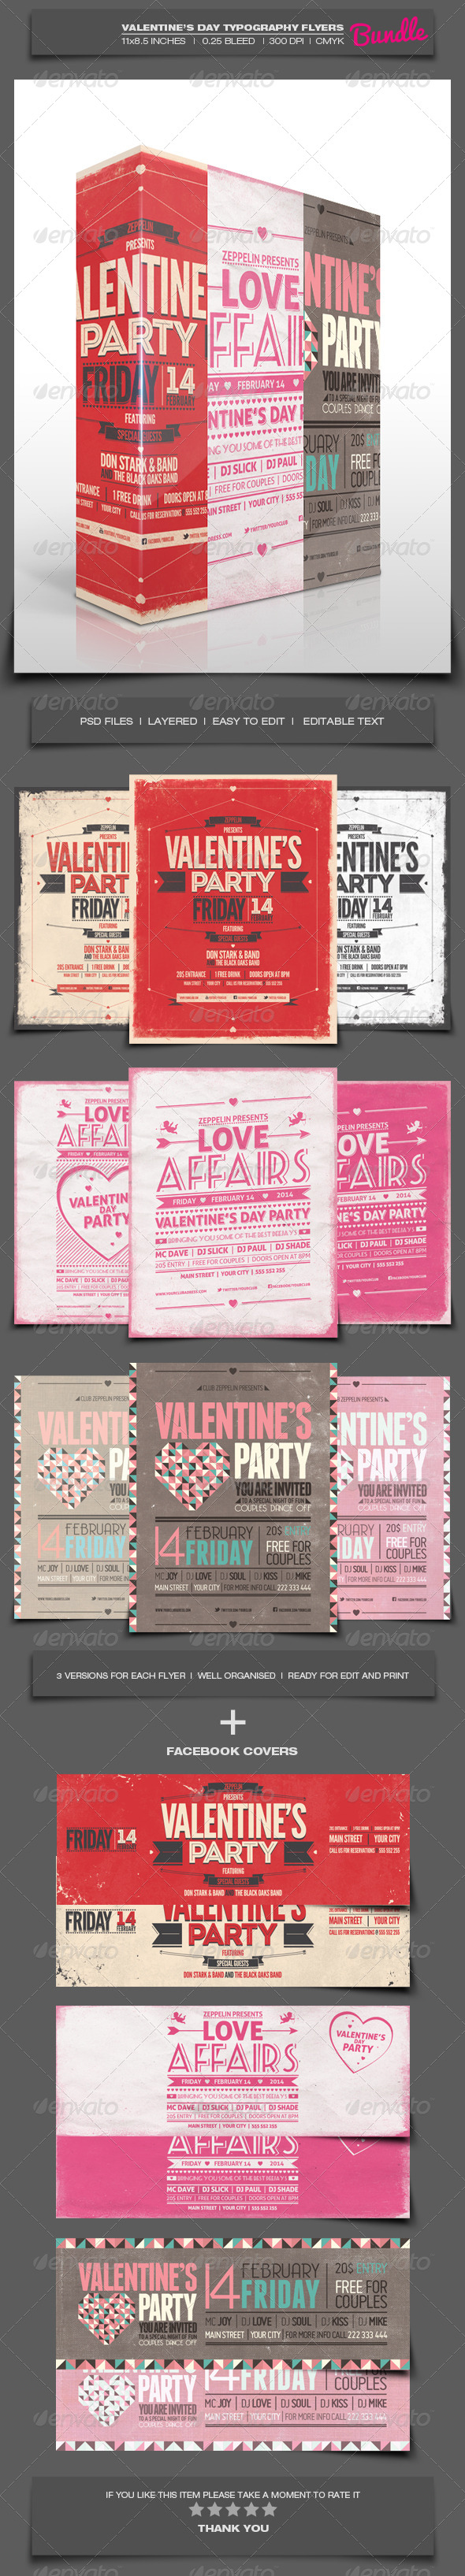 GraphicRiver Valentine s Day Party Typography Flyers Bundle 6593300